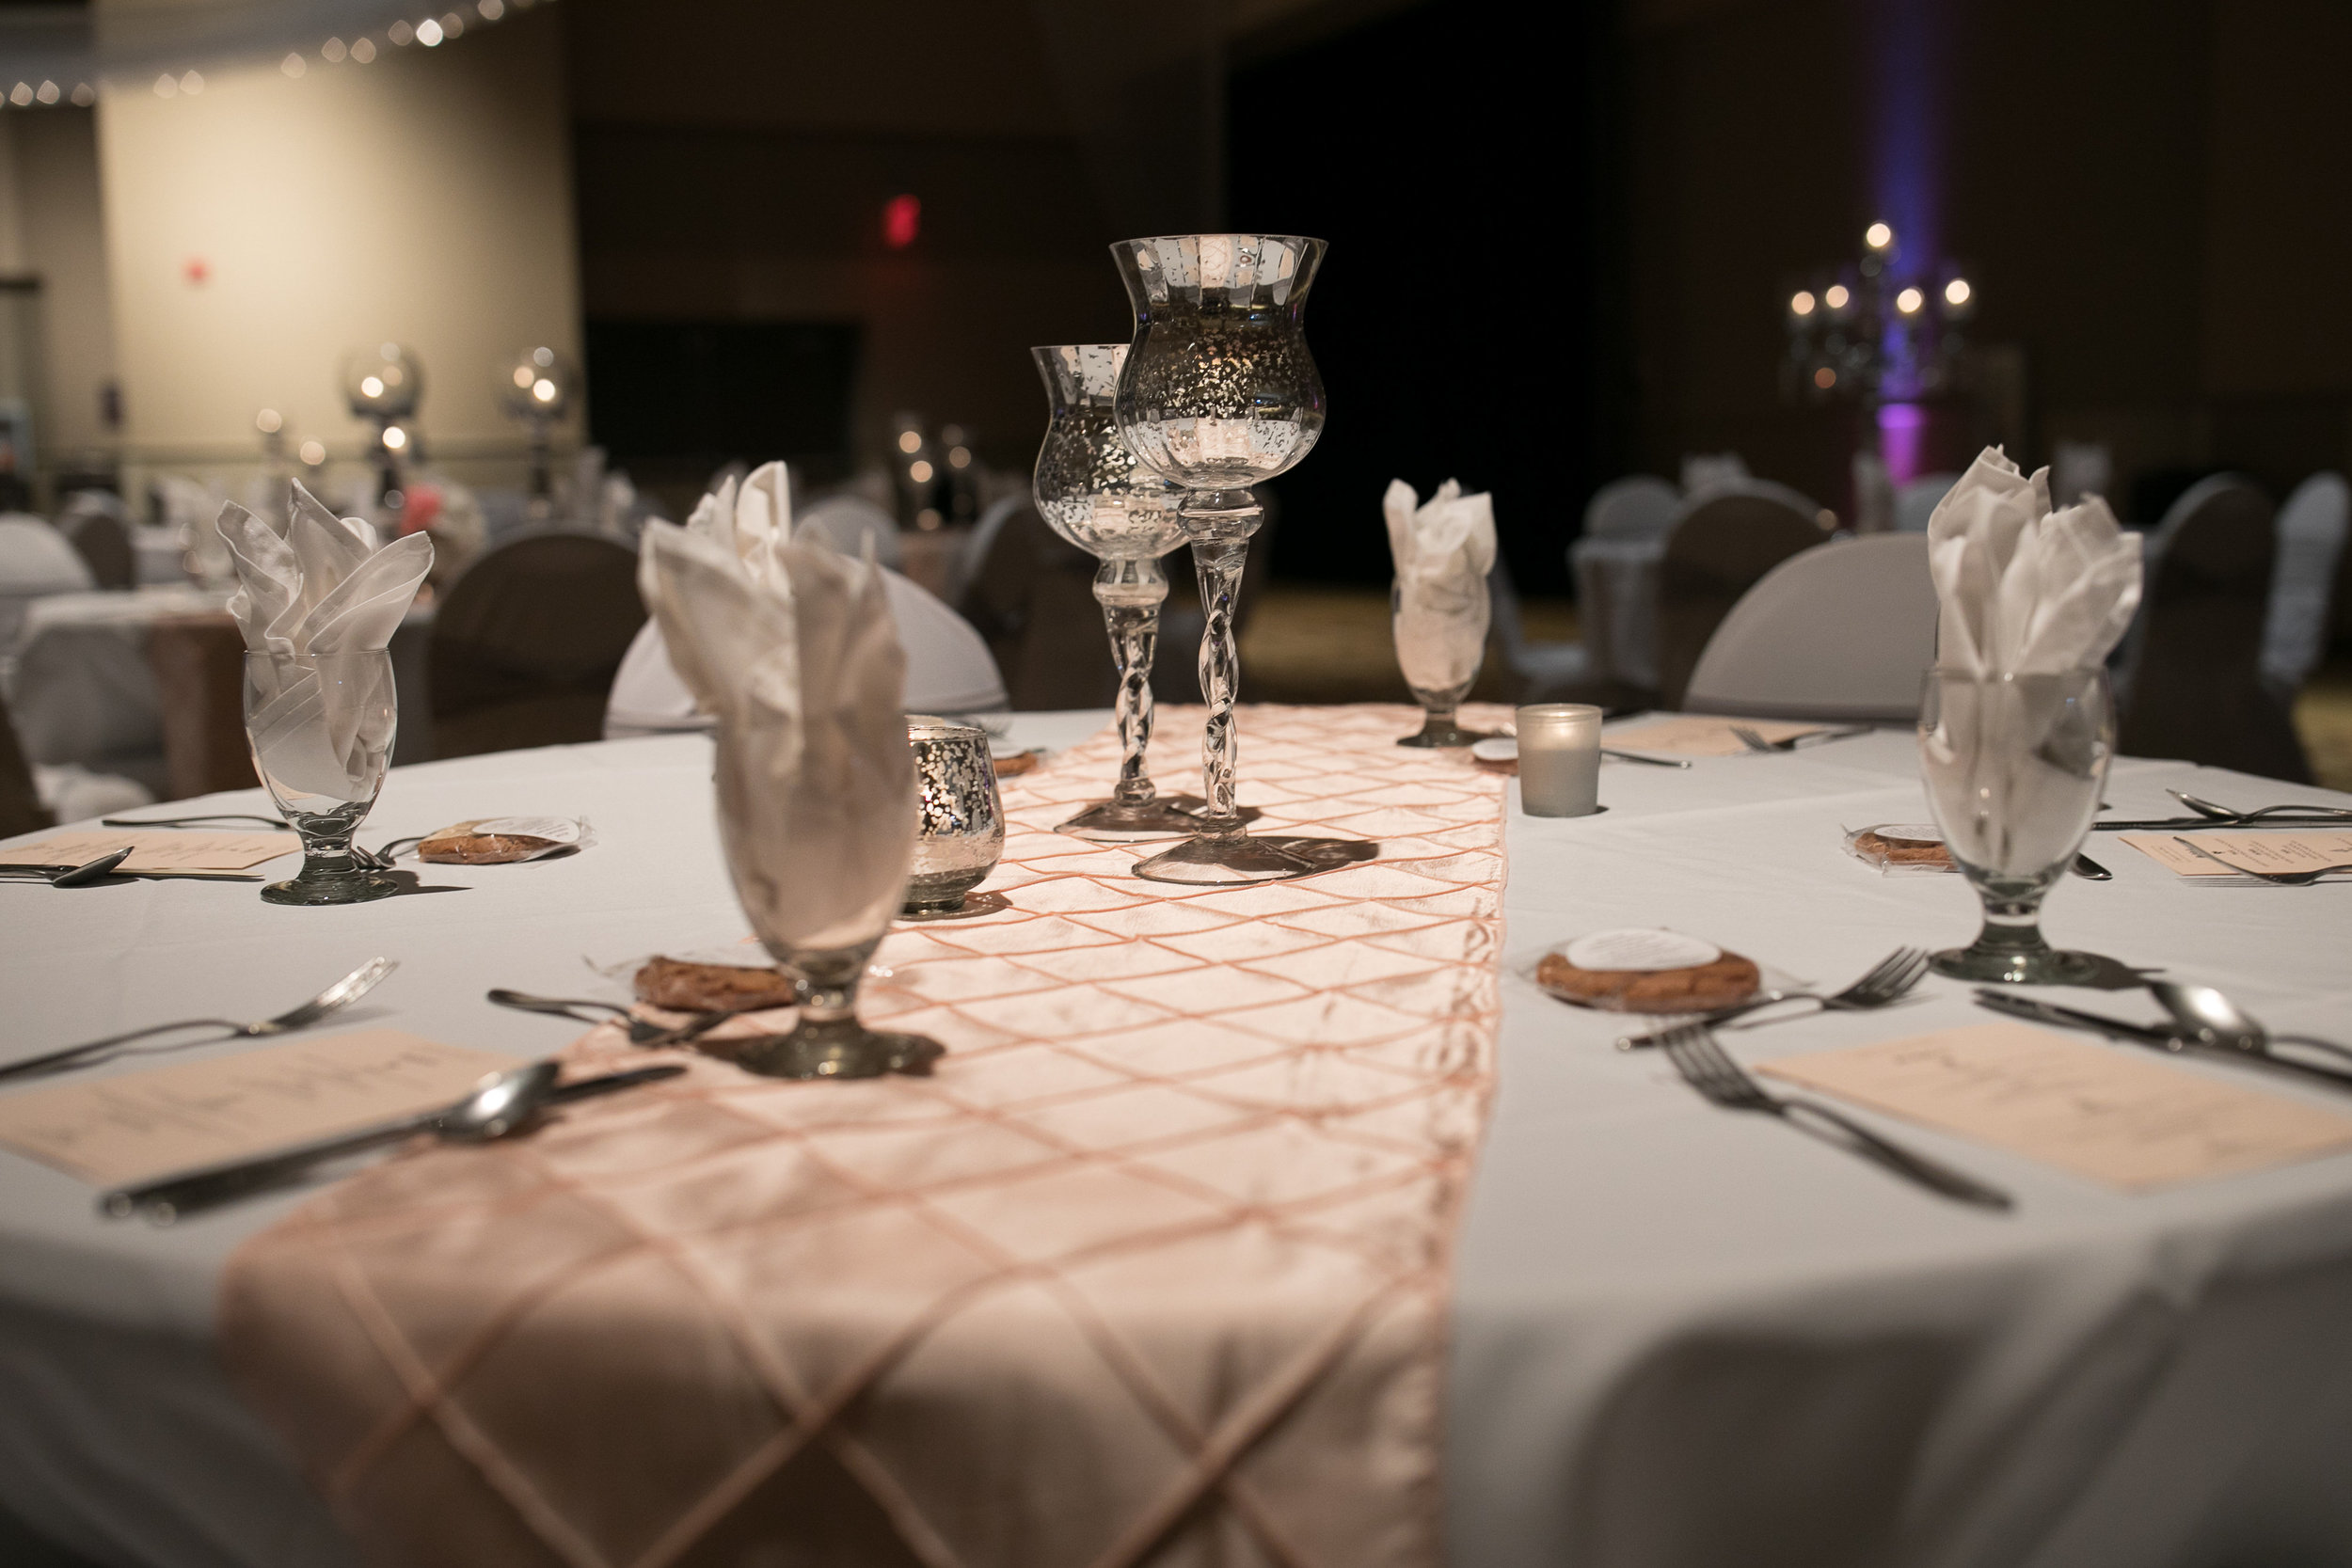 Gray table linen with light pink table runner | cookie guest favor | metallic silver candle holders | simple table decor | Ginger P design menu card | Verizon Wireless Center in Mankato | Alice HQ photography | Everly Lace decor